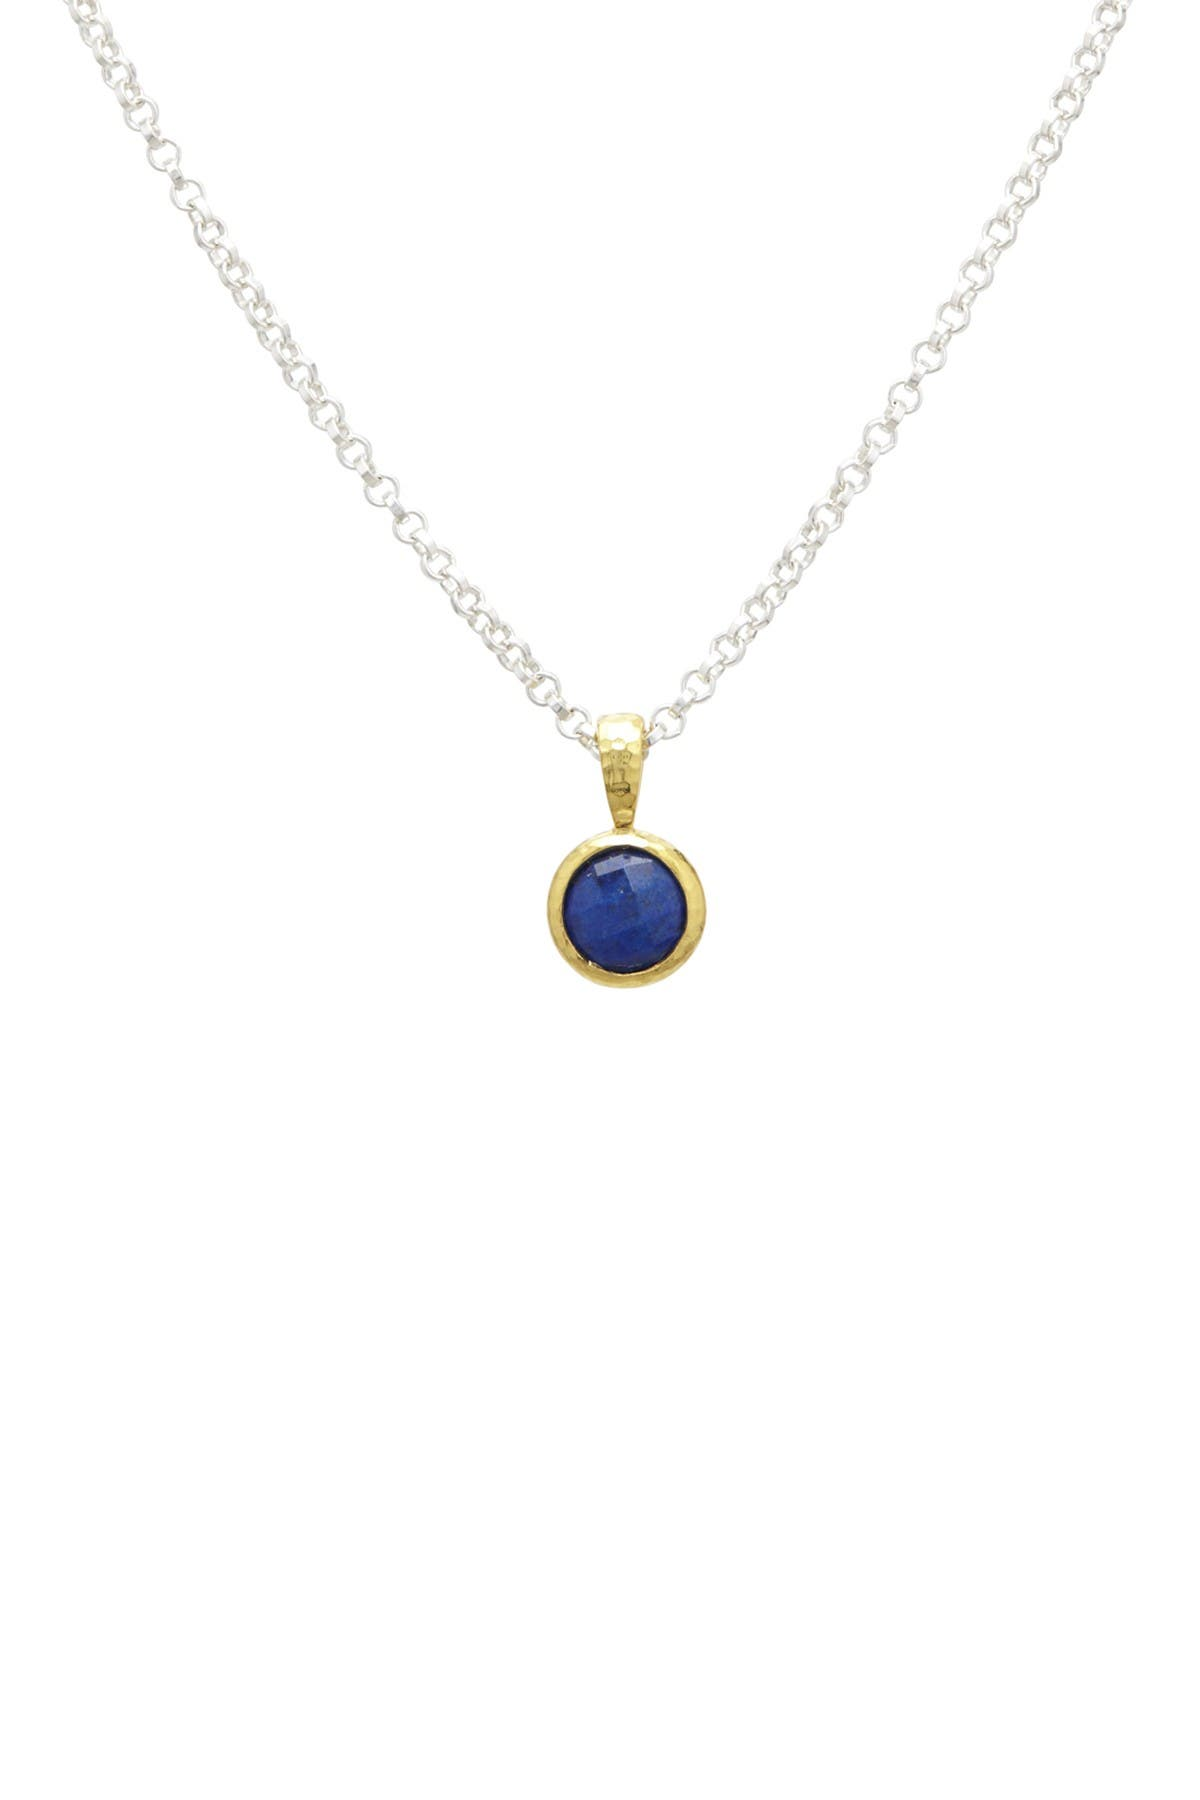 Image of Gurhan Pendant Necklace With Checkerboard Cut Lapis